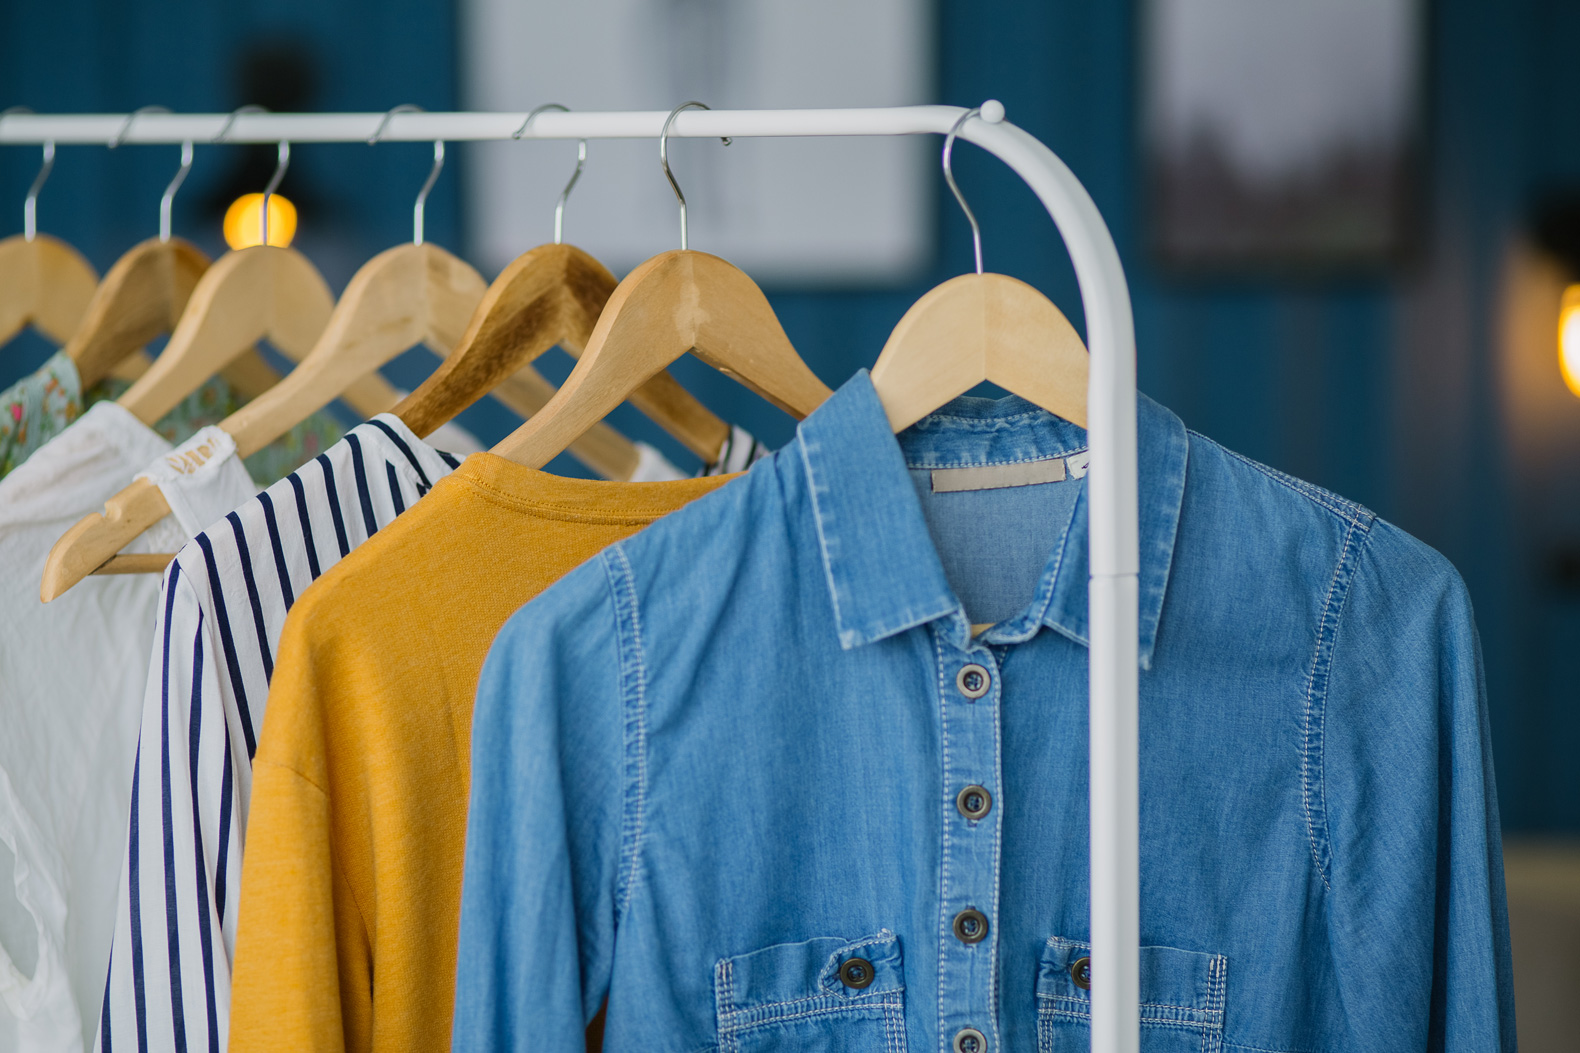 The sustainable wardrobe: it's more accessible than you think